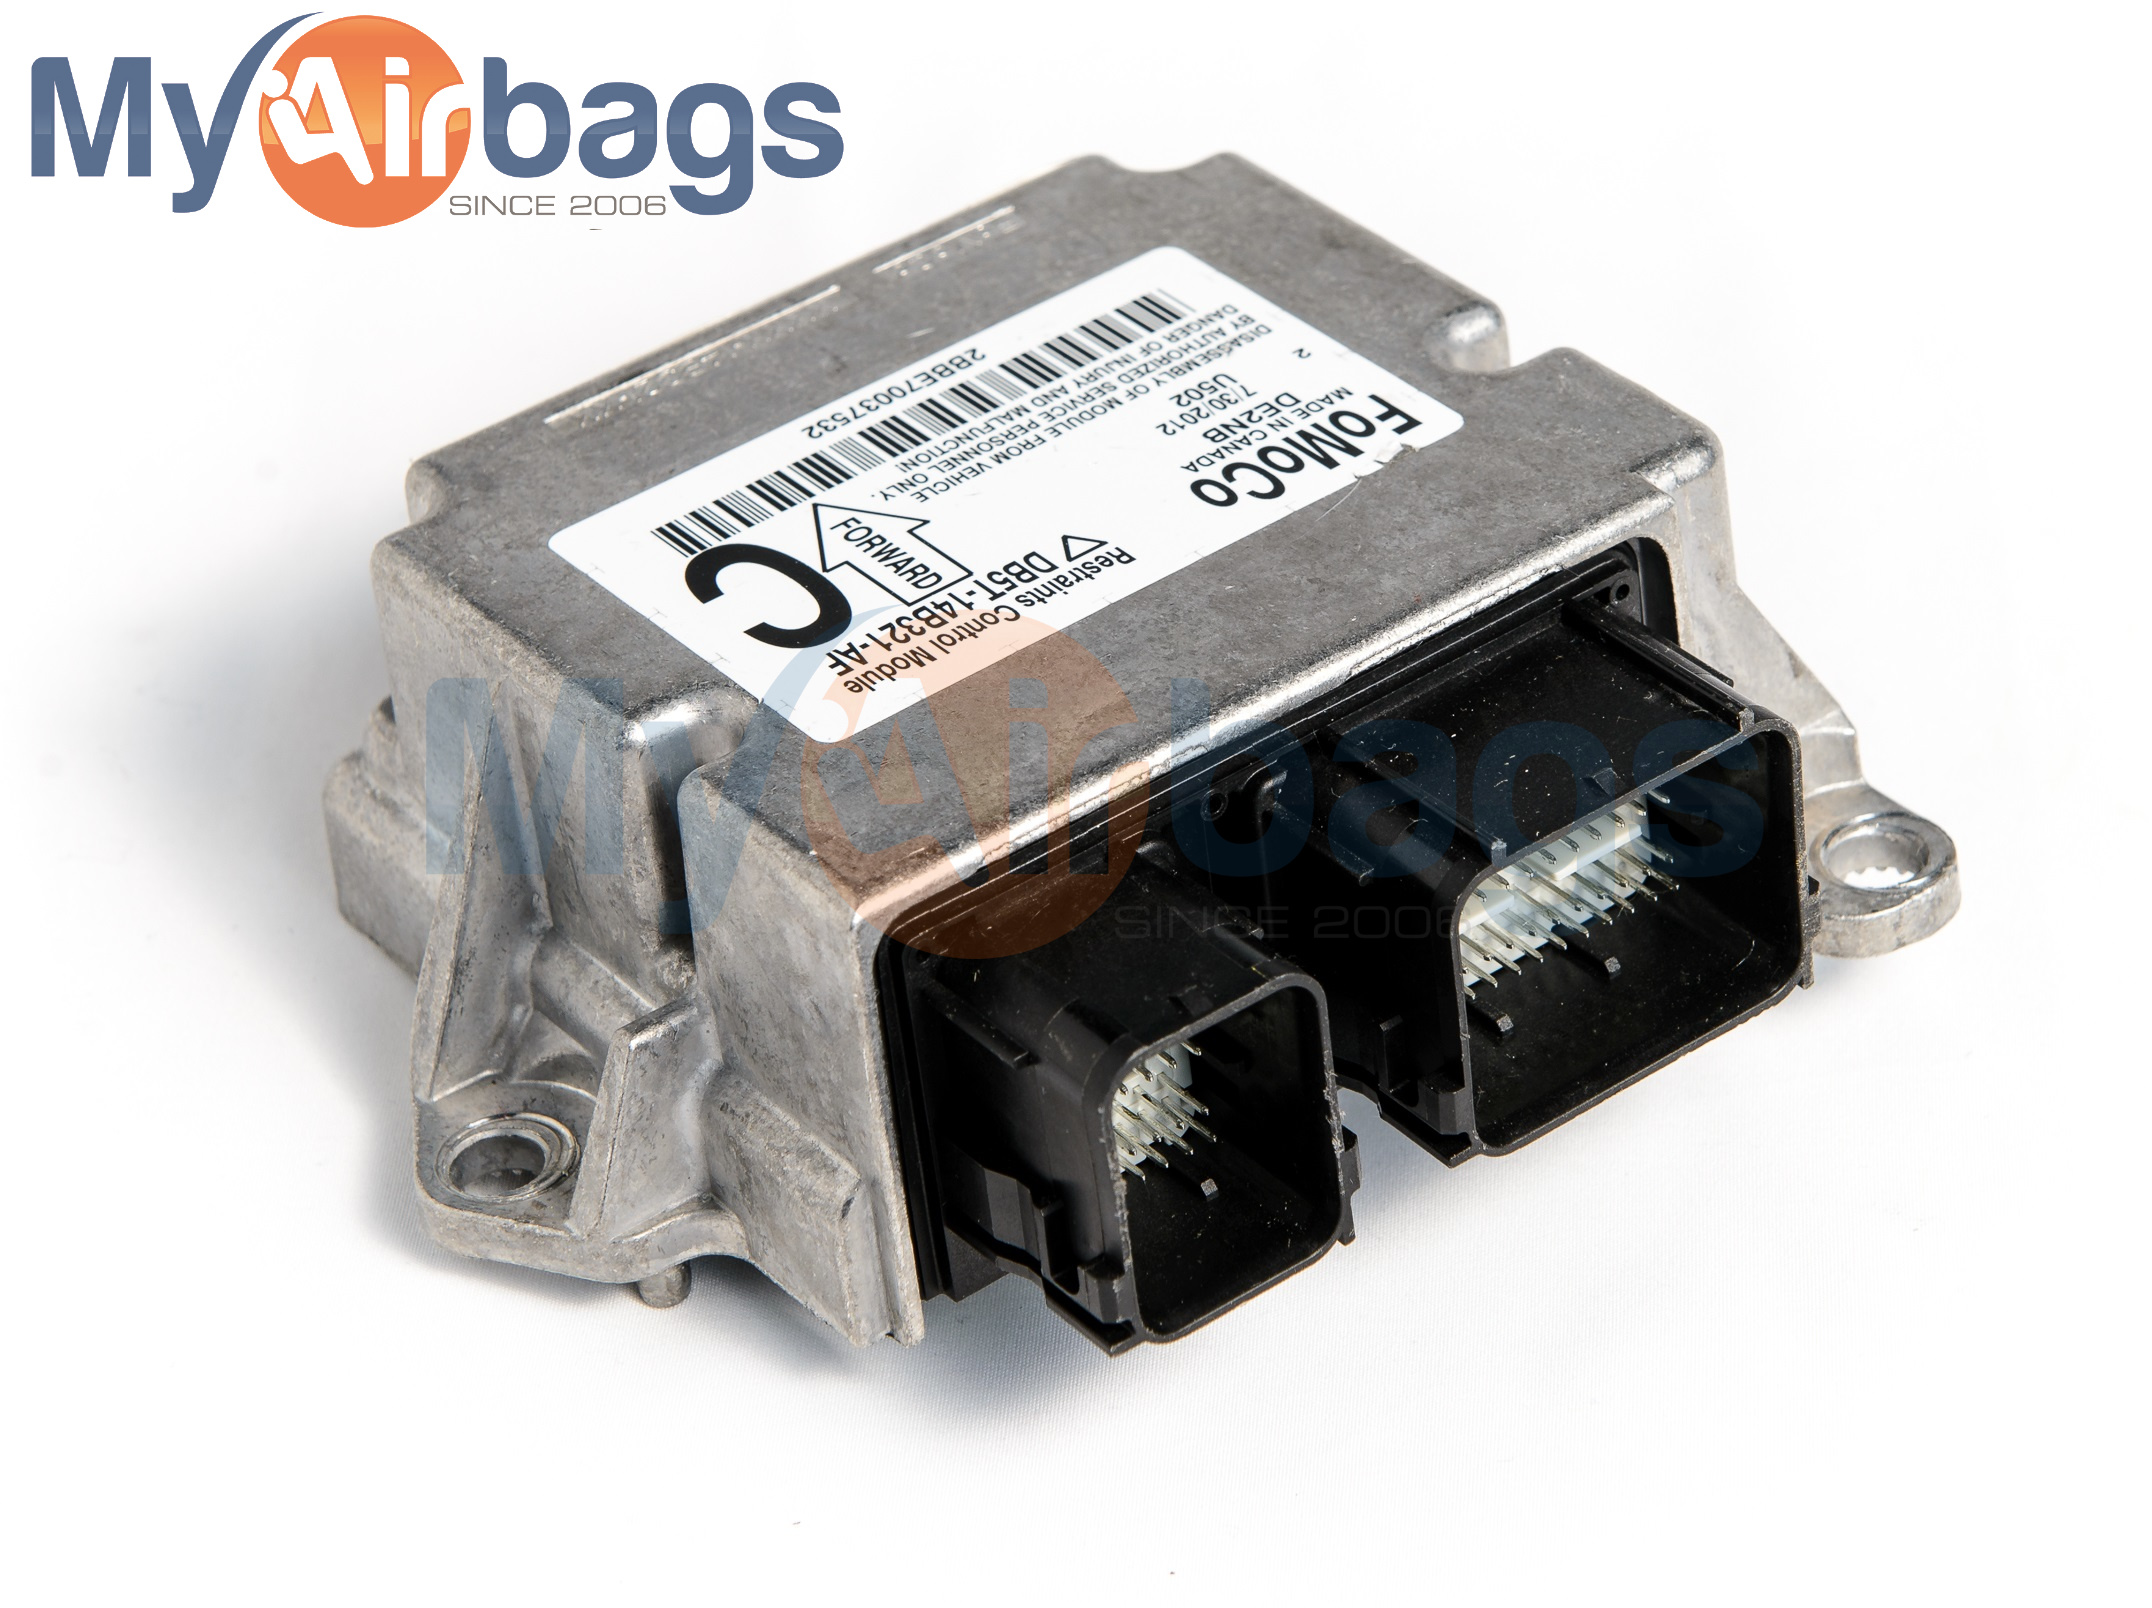 Myairbags Provides Airbag Module Reset With Hardware Issues